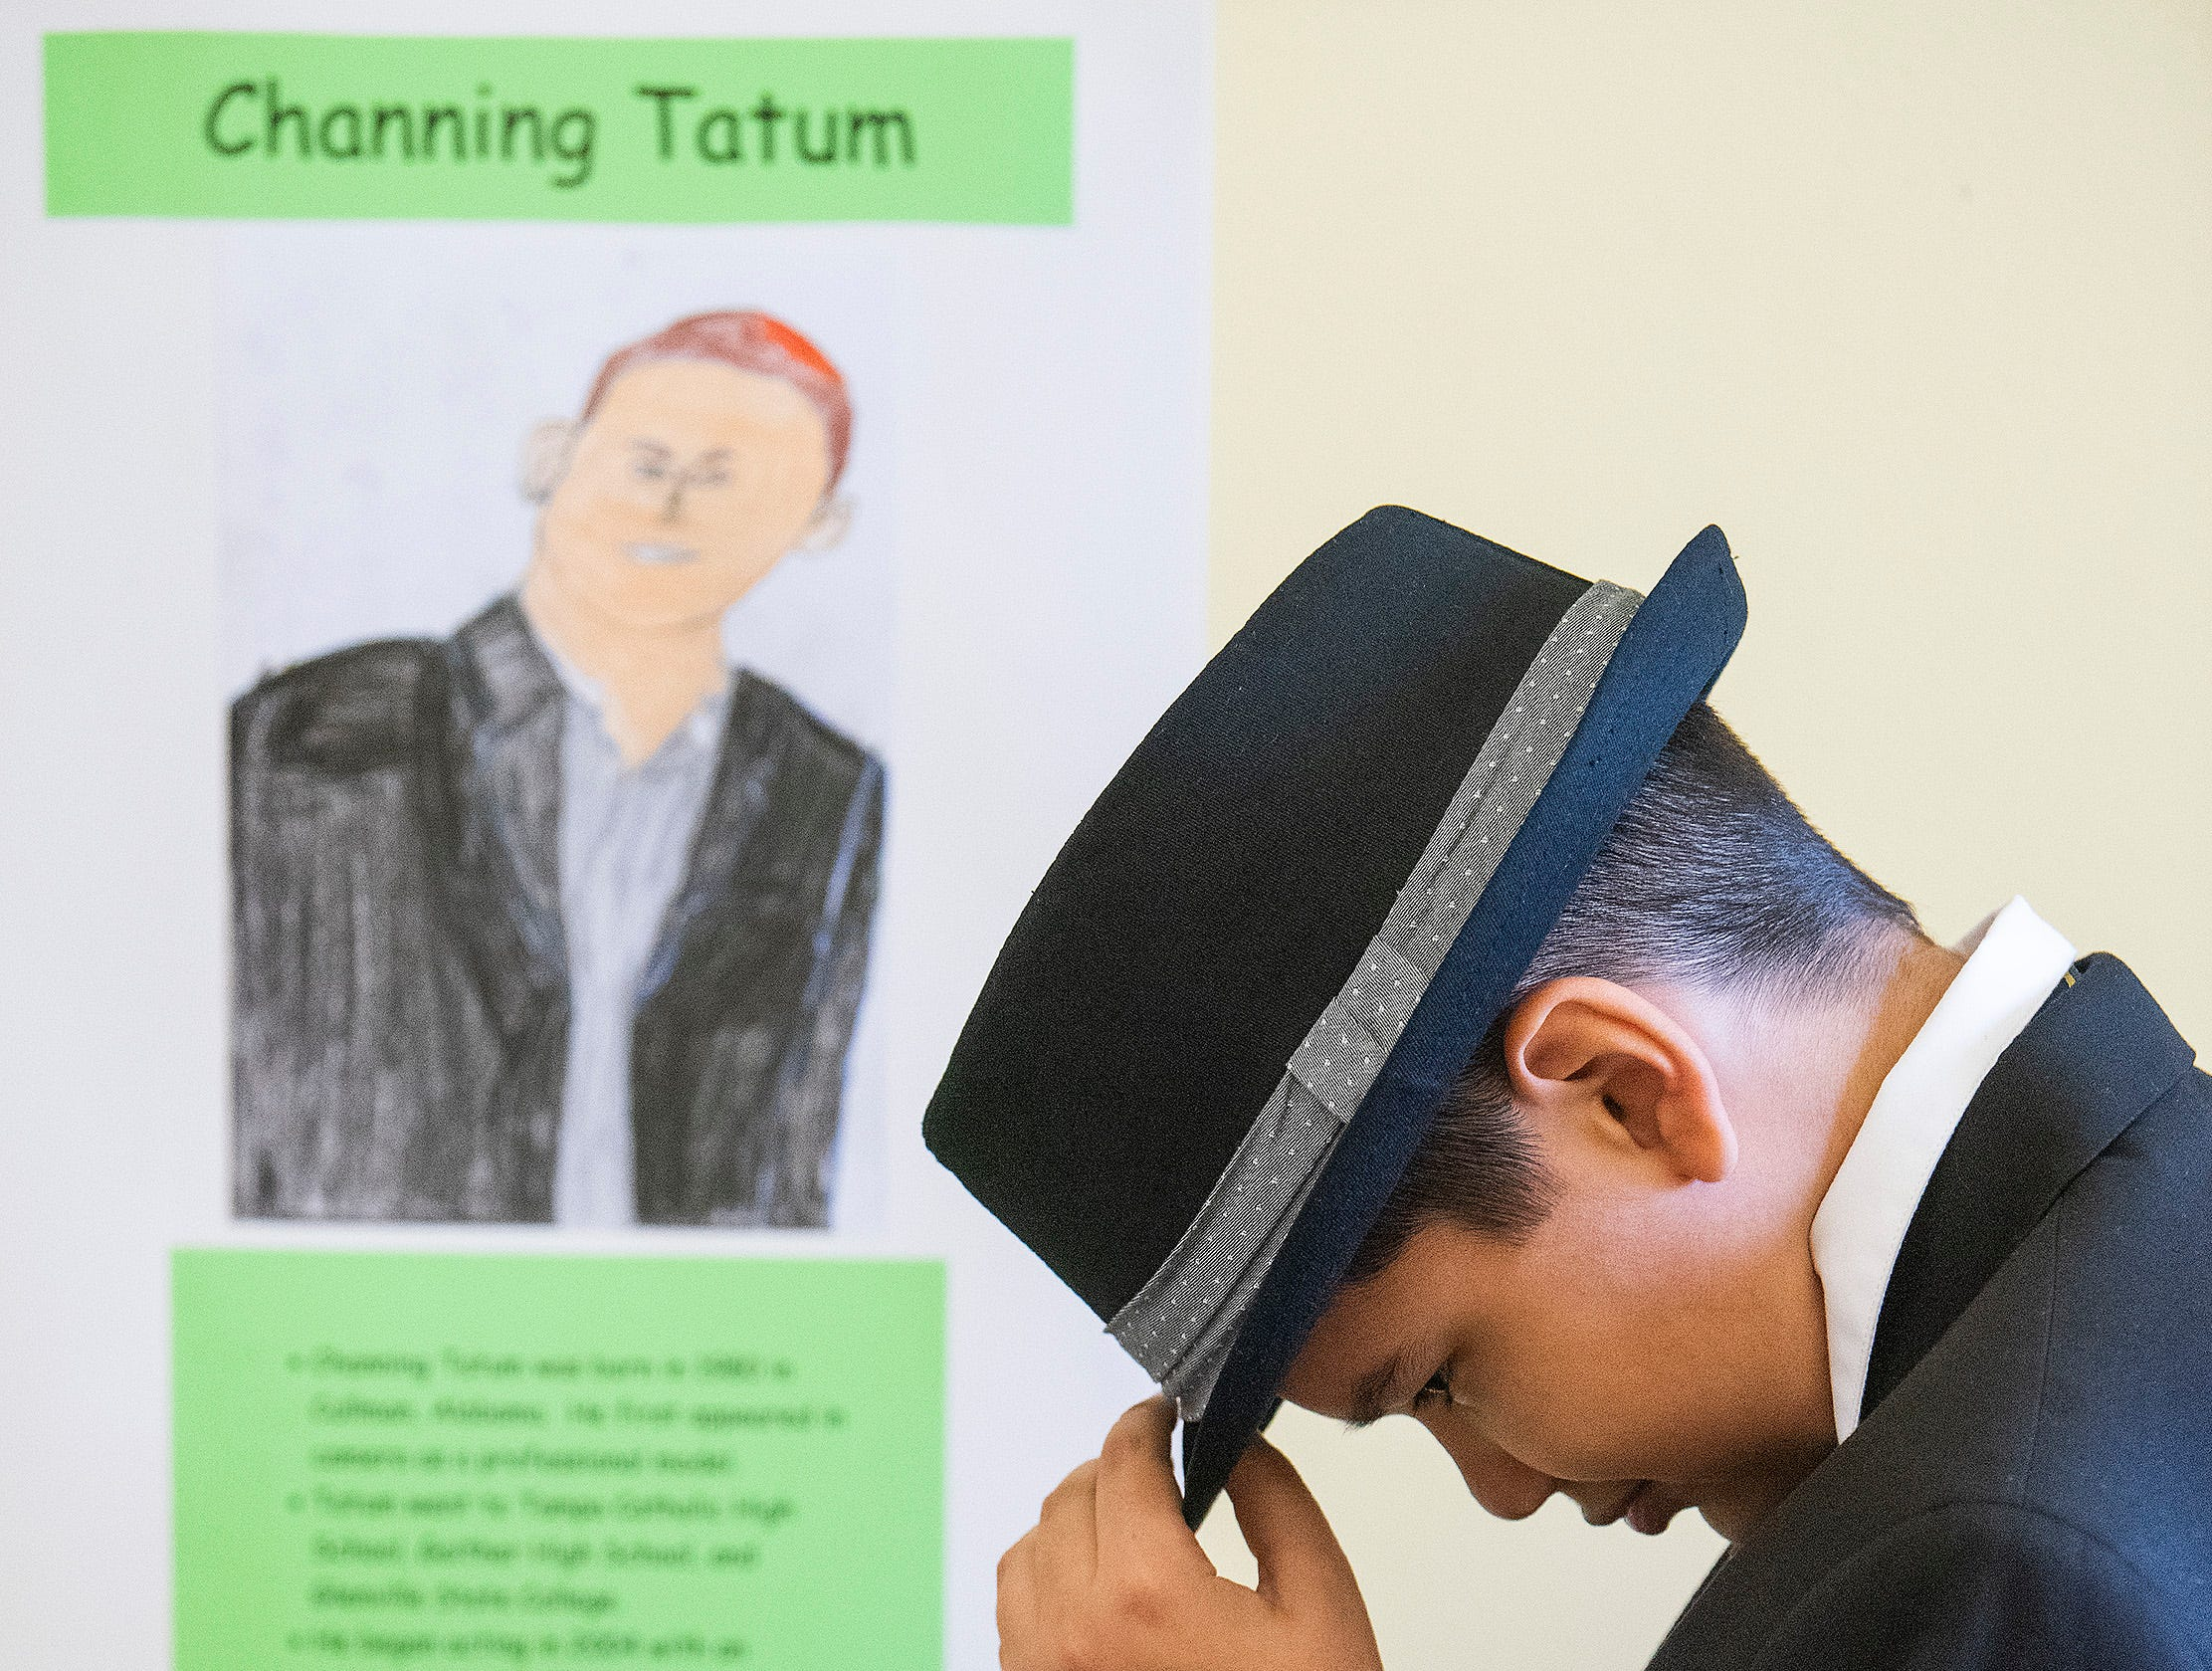 Manuel Jimenez plays Channing Tatum as students portray Alabamians in their Alabama Bicentennial Wax Museum, telling the stories of their characters to visitors, at Holy Cross Episcopal School in Montgomery, Ala., on Friday February 15, 2019.